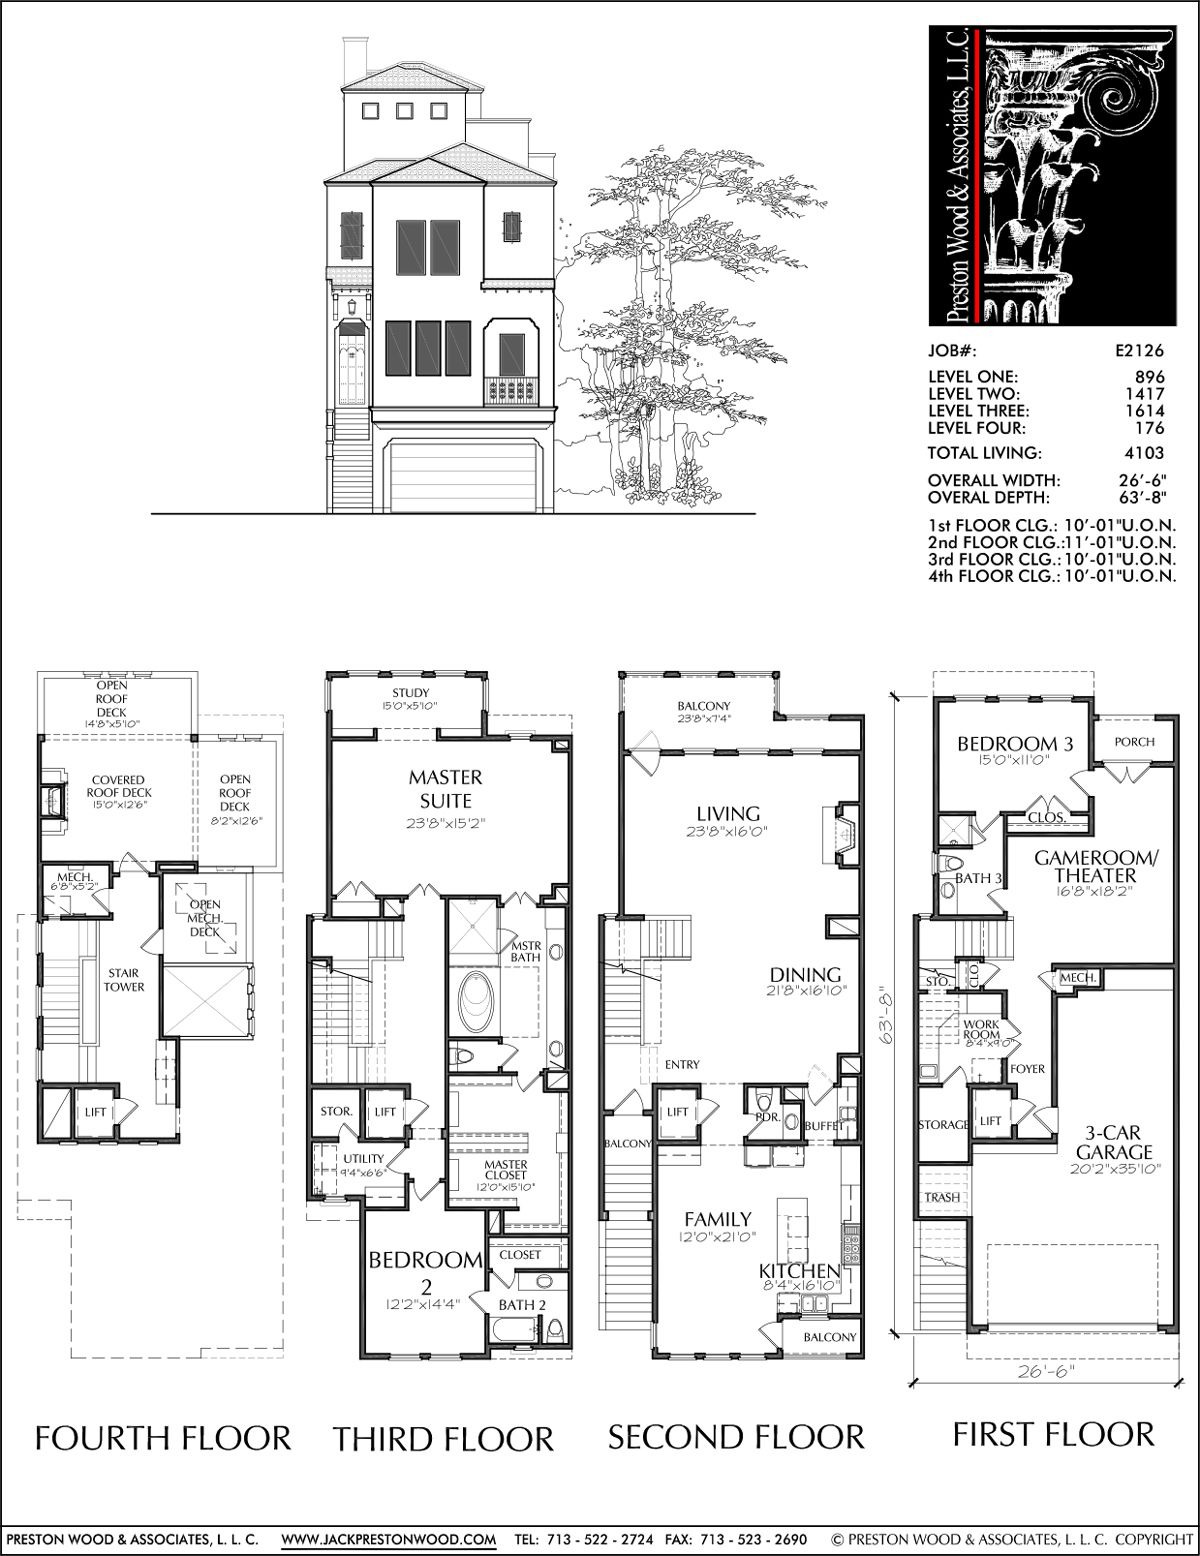 Townhouse Plans Narrow Lot New 3 1 2 Story townhouse Plan E2126 with Images